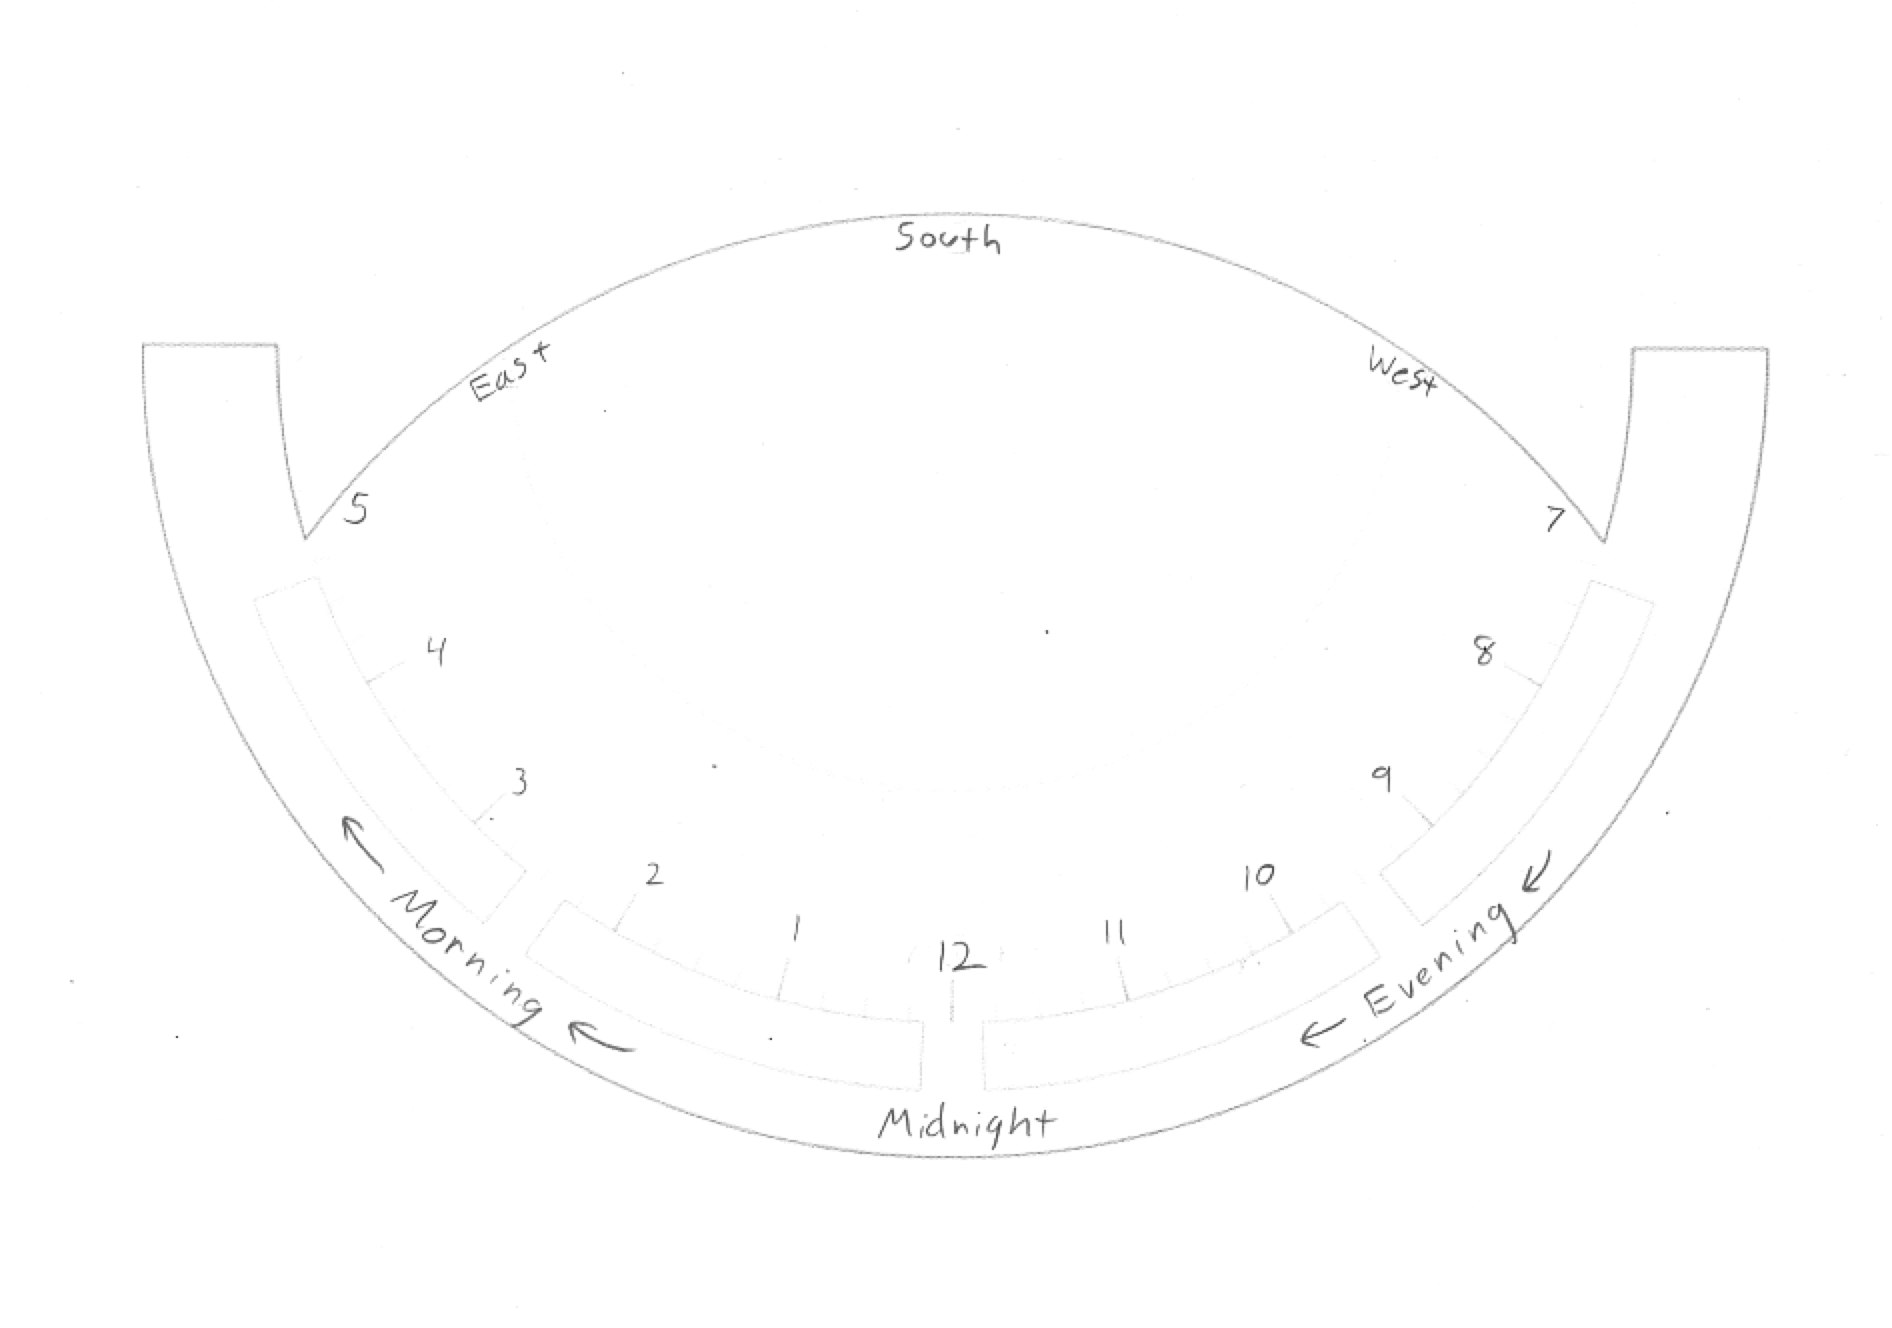 graphic about Planisphere Printable named Printable Planispheres